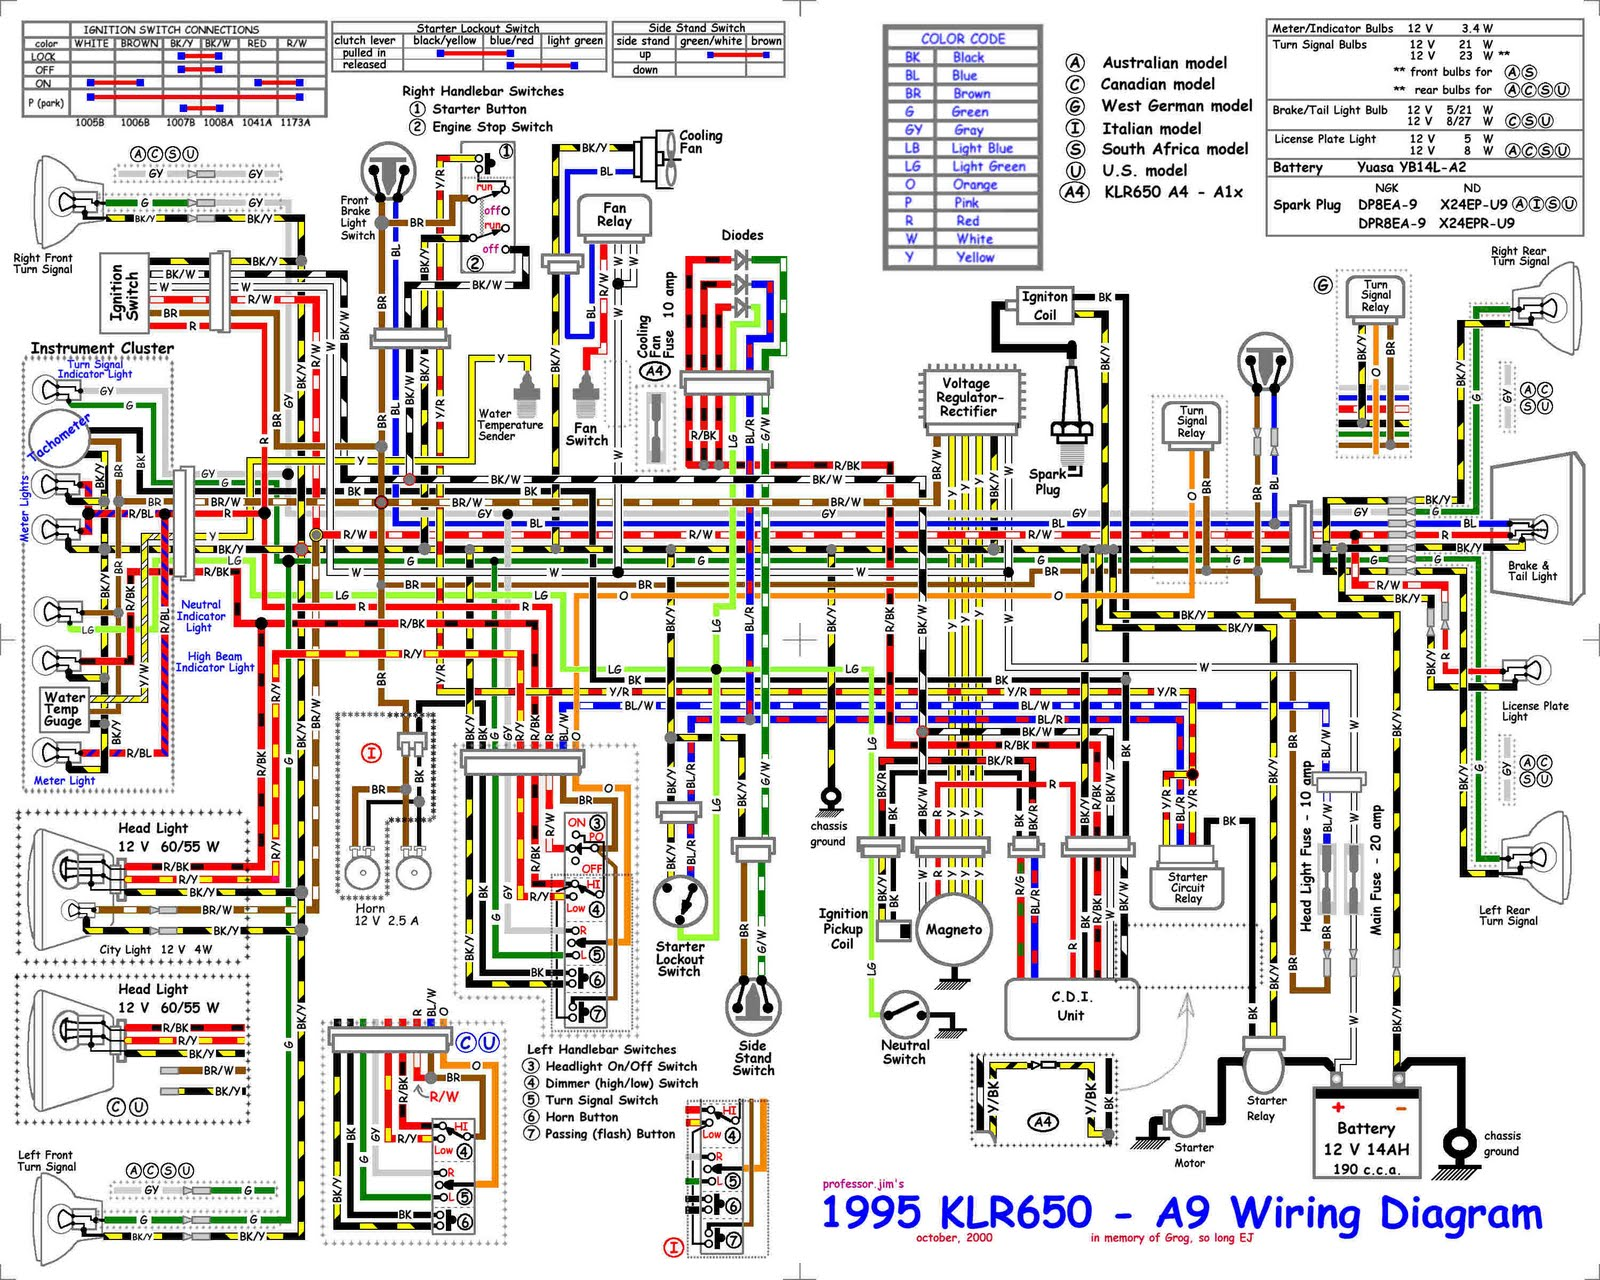 1974 monte carlo wiring diagram 1985 monte carlo wiring diagram 1985 chevy monte carlo wiring 2006 monte carlo fuse box diagram at creativeand.co